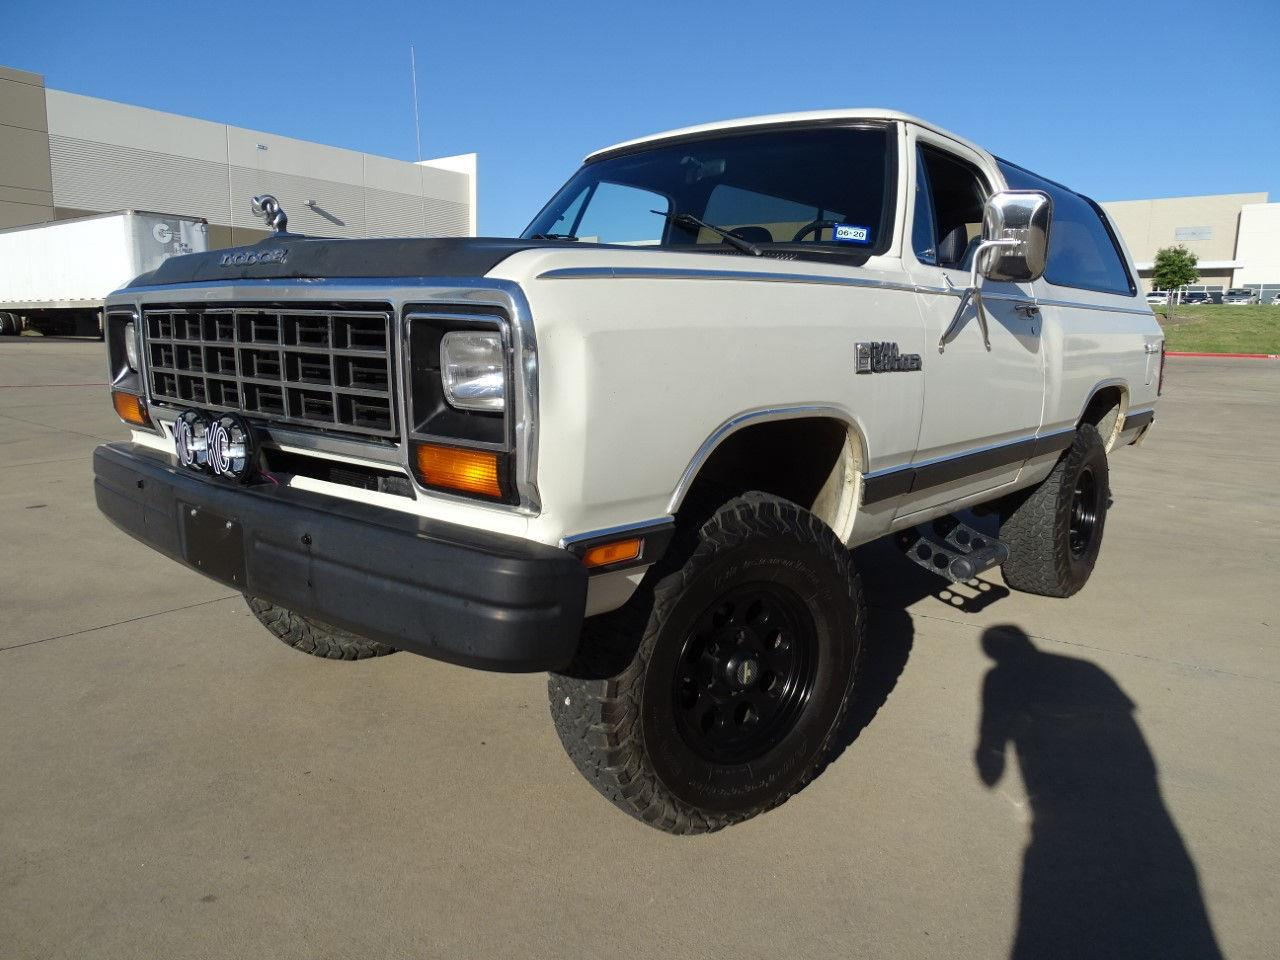 1985 Dodge Ramcharger (CC-1356384) for sale in O'Fallon, Illinois